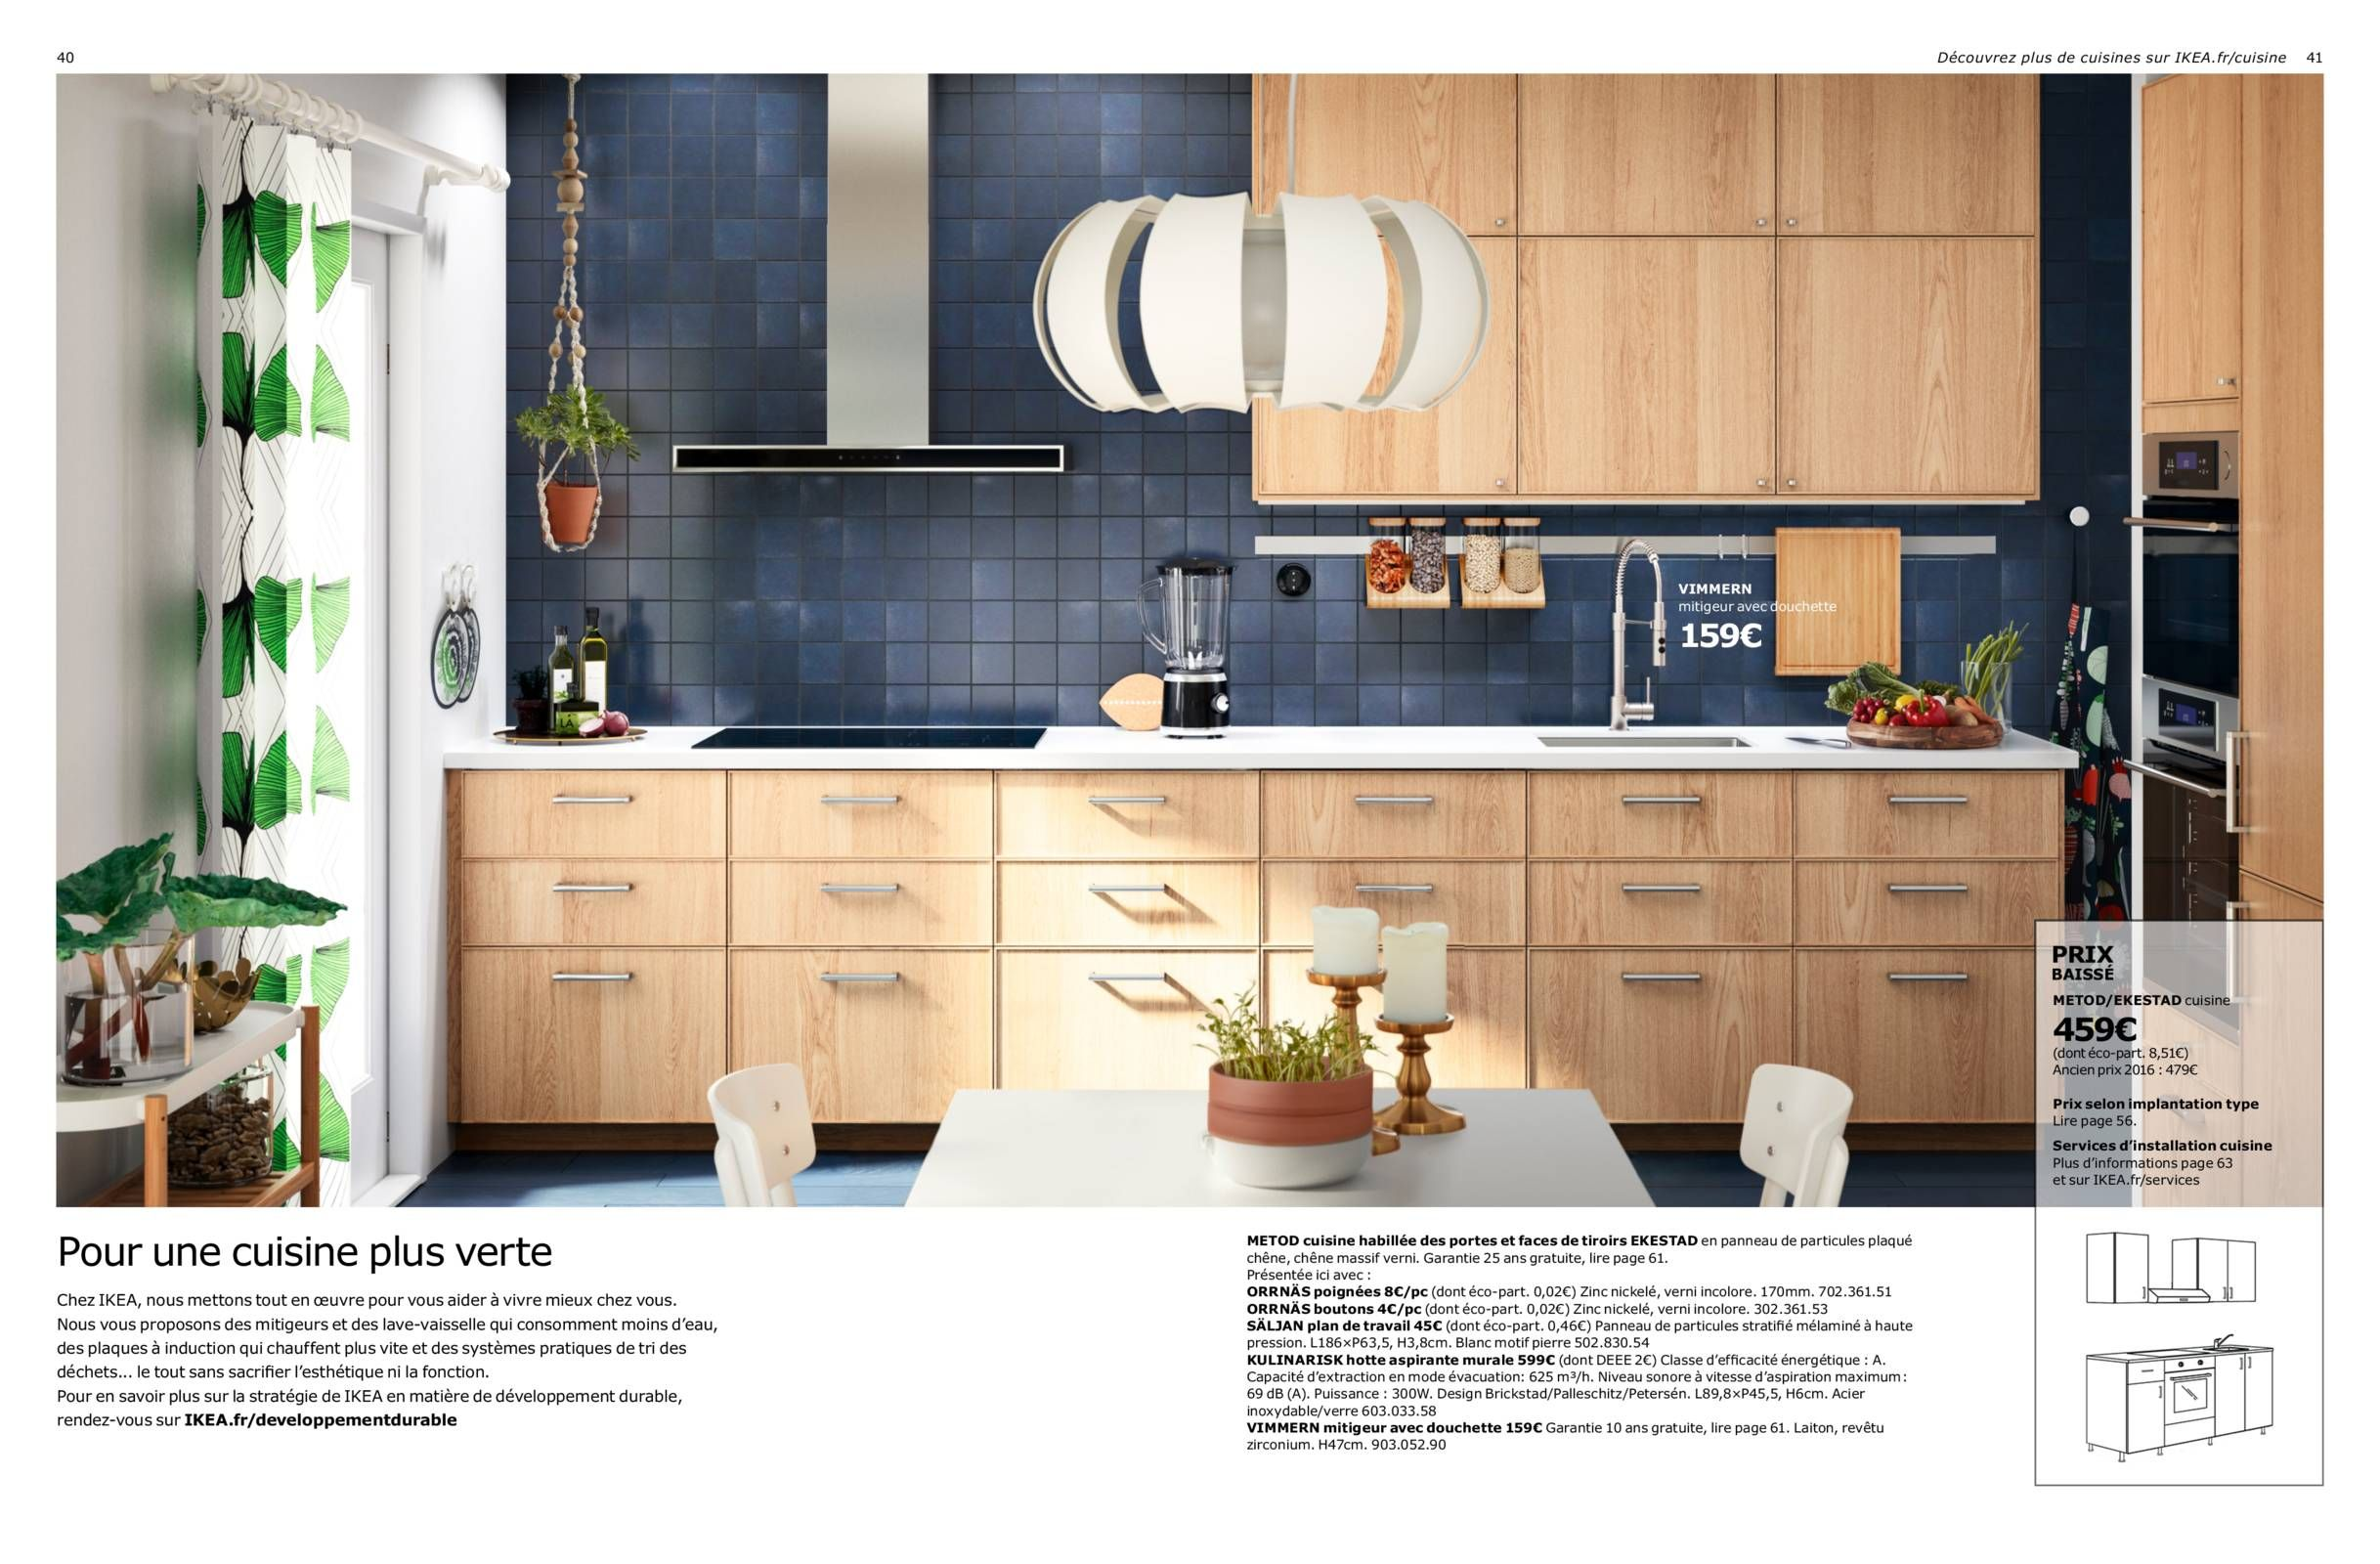 brochure cuisines ikea 2017 kitchen pinterest cuisine ikea ikea et cuisines. Black Bedroom Furniture Sets. Home Design Ideas